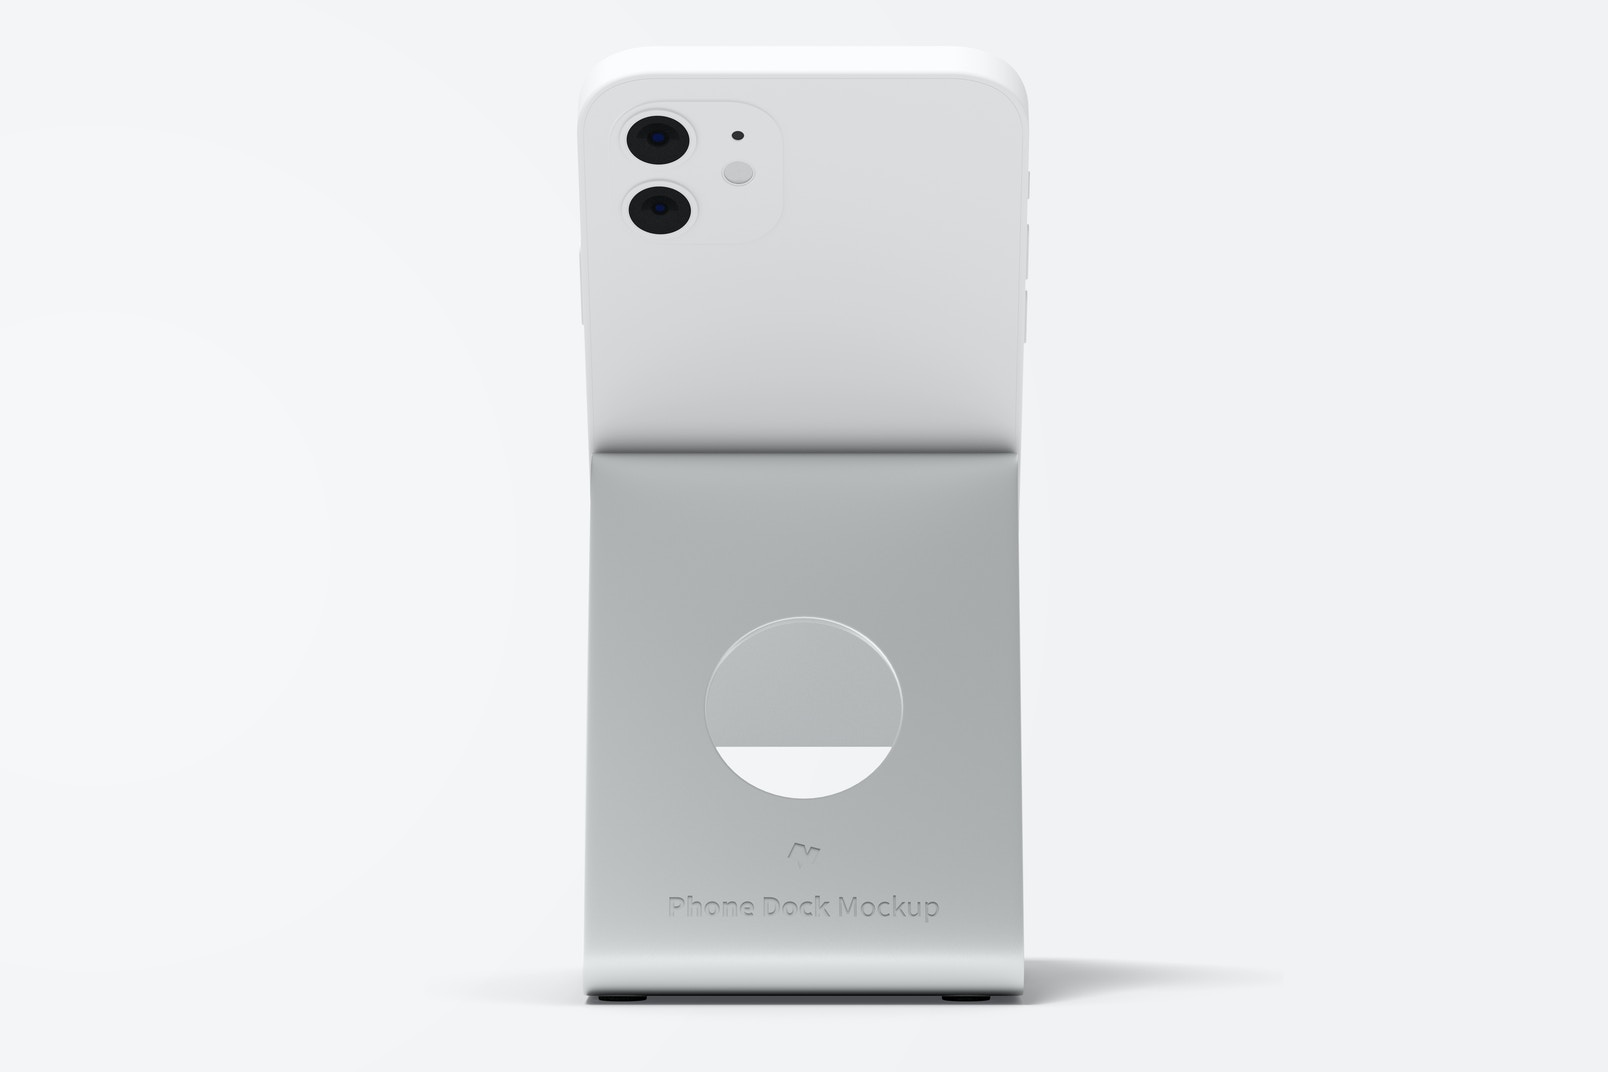 Phone Dock Mockup, Front View